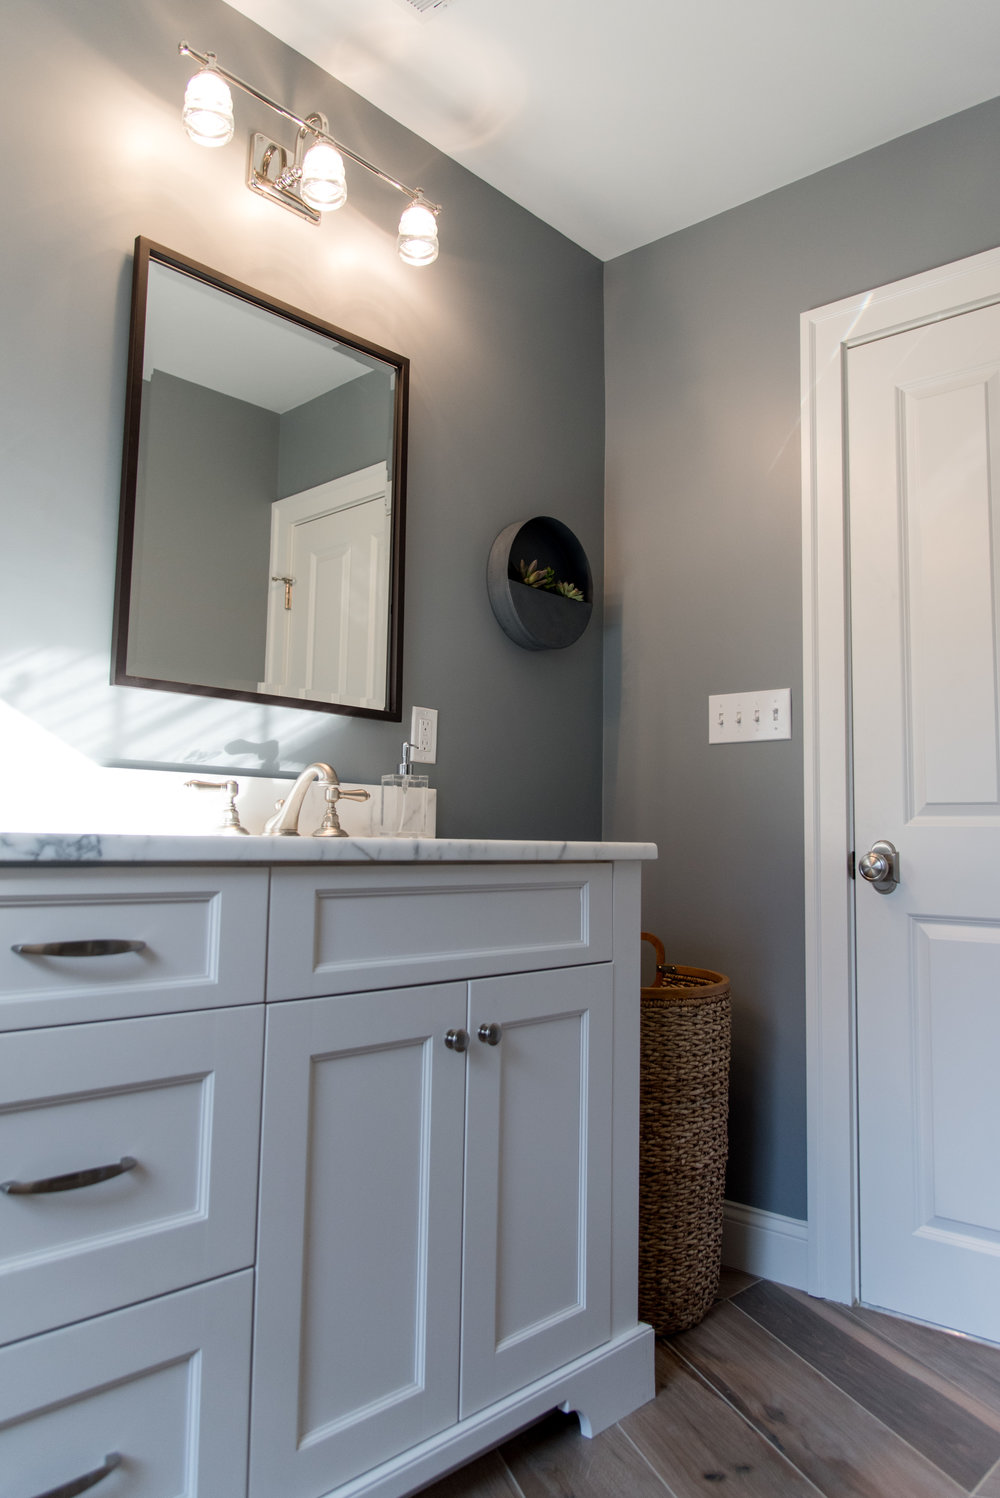 Interior Design Newton Massachusetts decor interior designer Gina Baran Bathroom Design